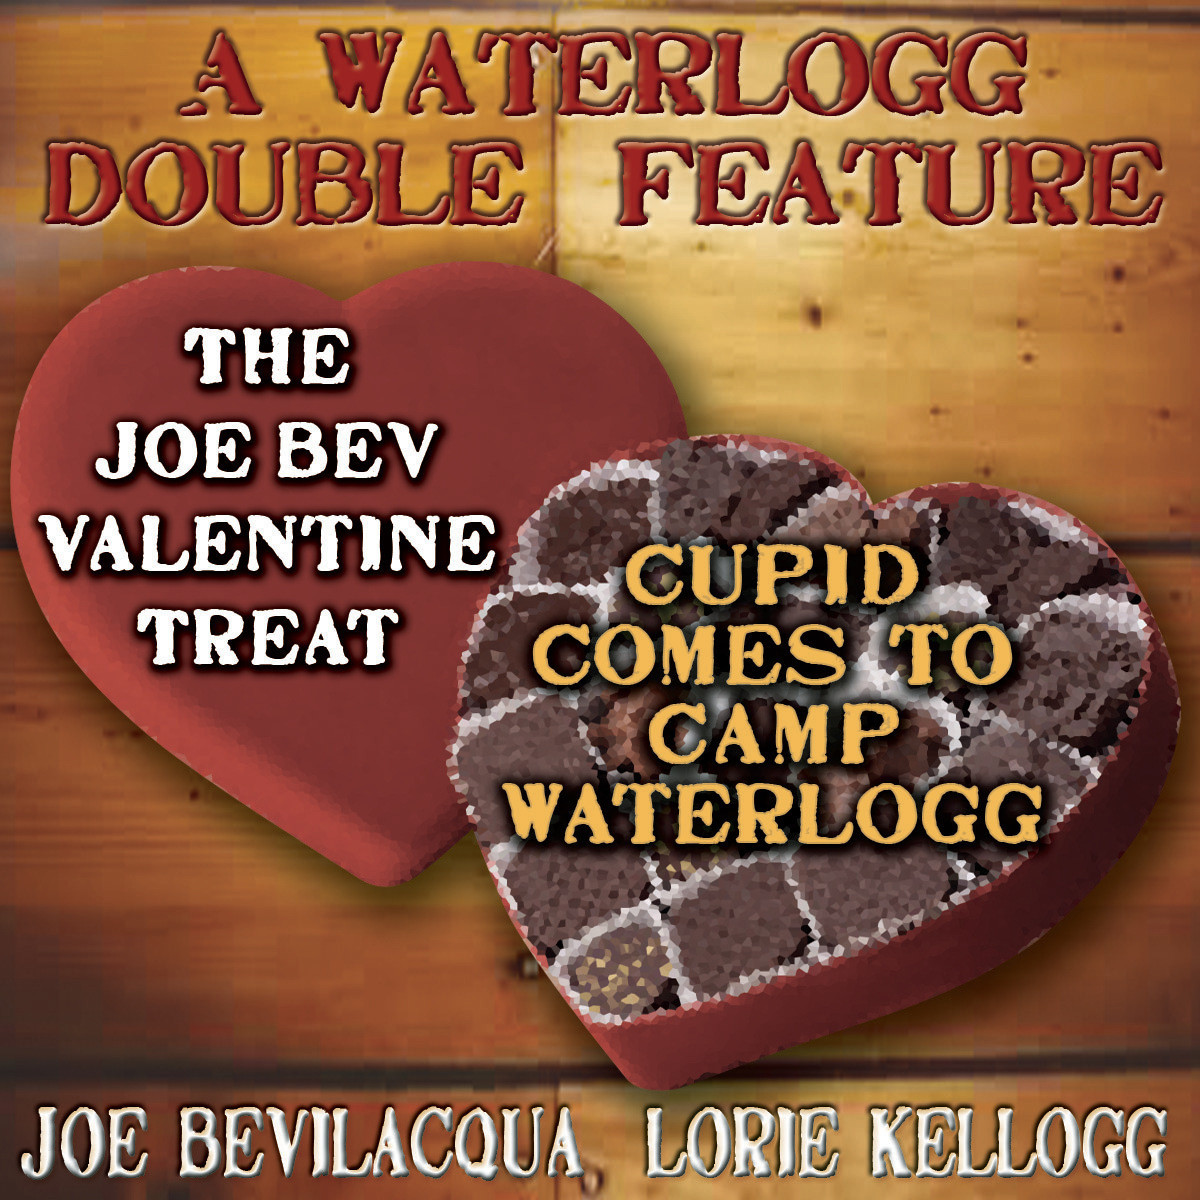 Printable A Waterlogg Double Feature: The Joe Bev Valentine Treat & The Comedy-O-Rama Hour Valentine Special: Cupid Comes to Camp Waterlogg Audiobook Cover Art